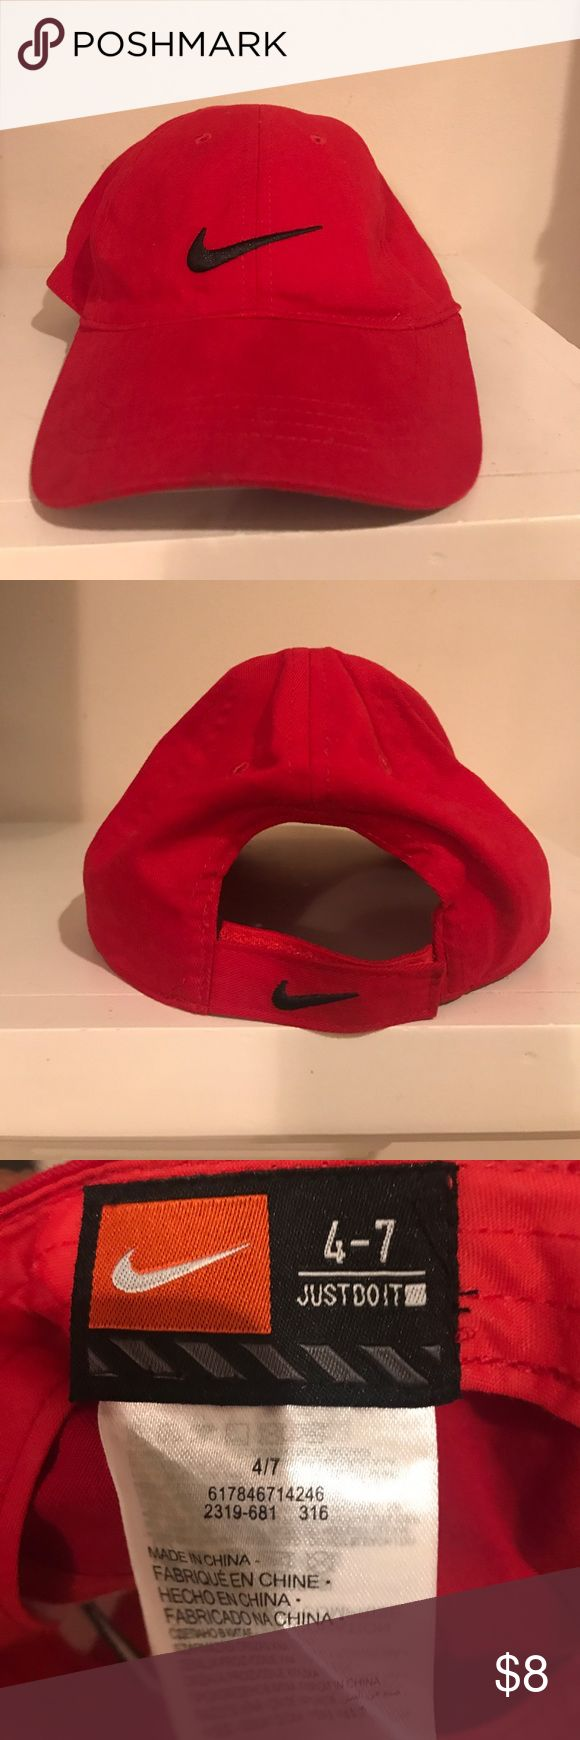 Youth Nike hat Red Nike Accessories Hats